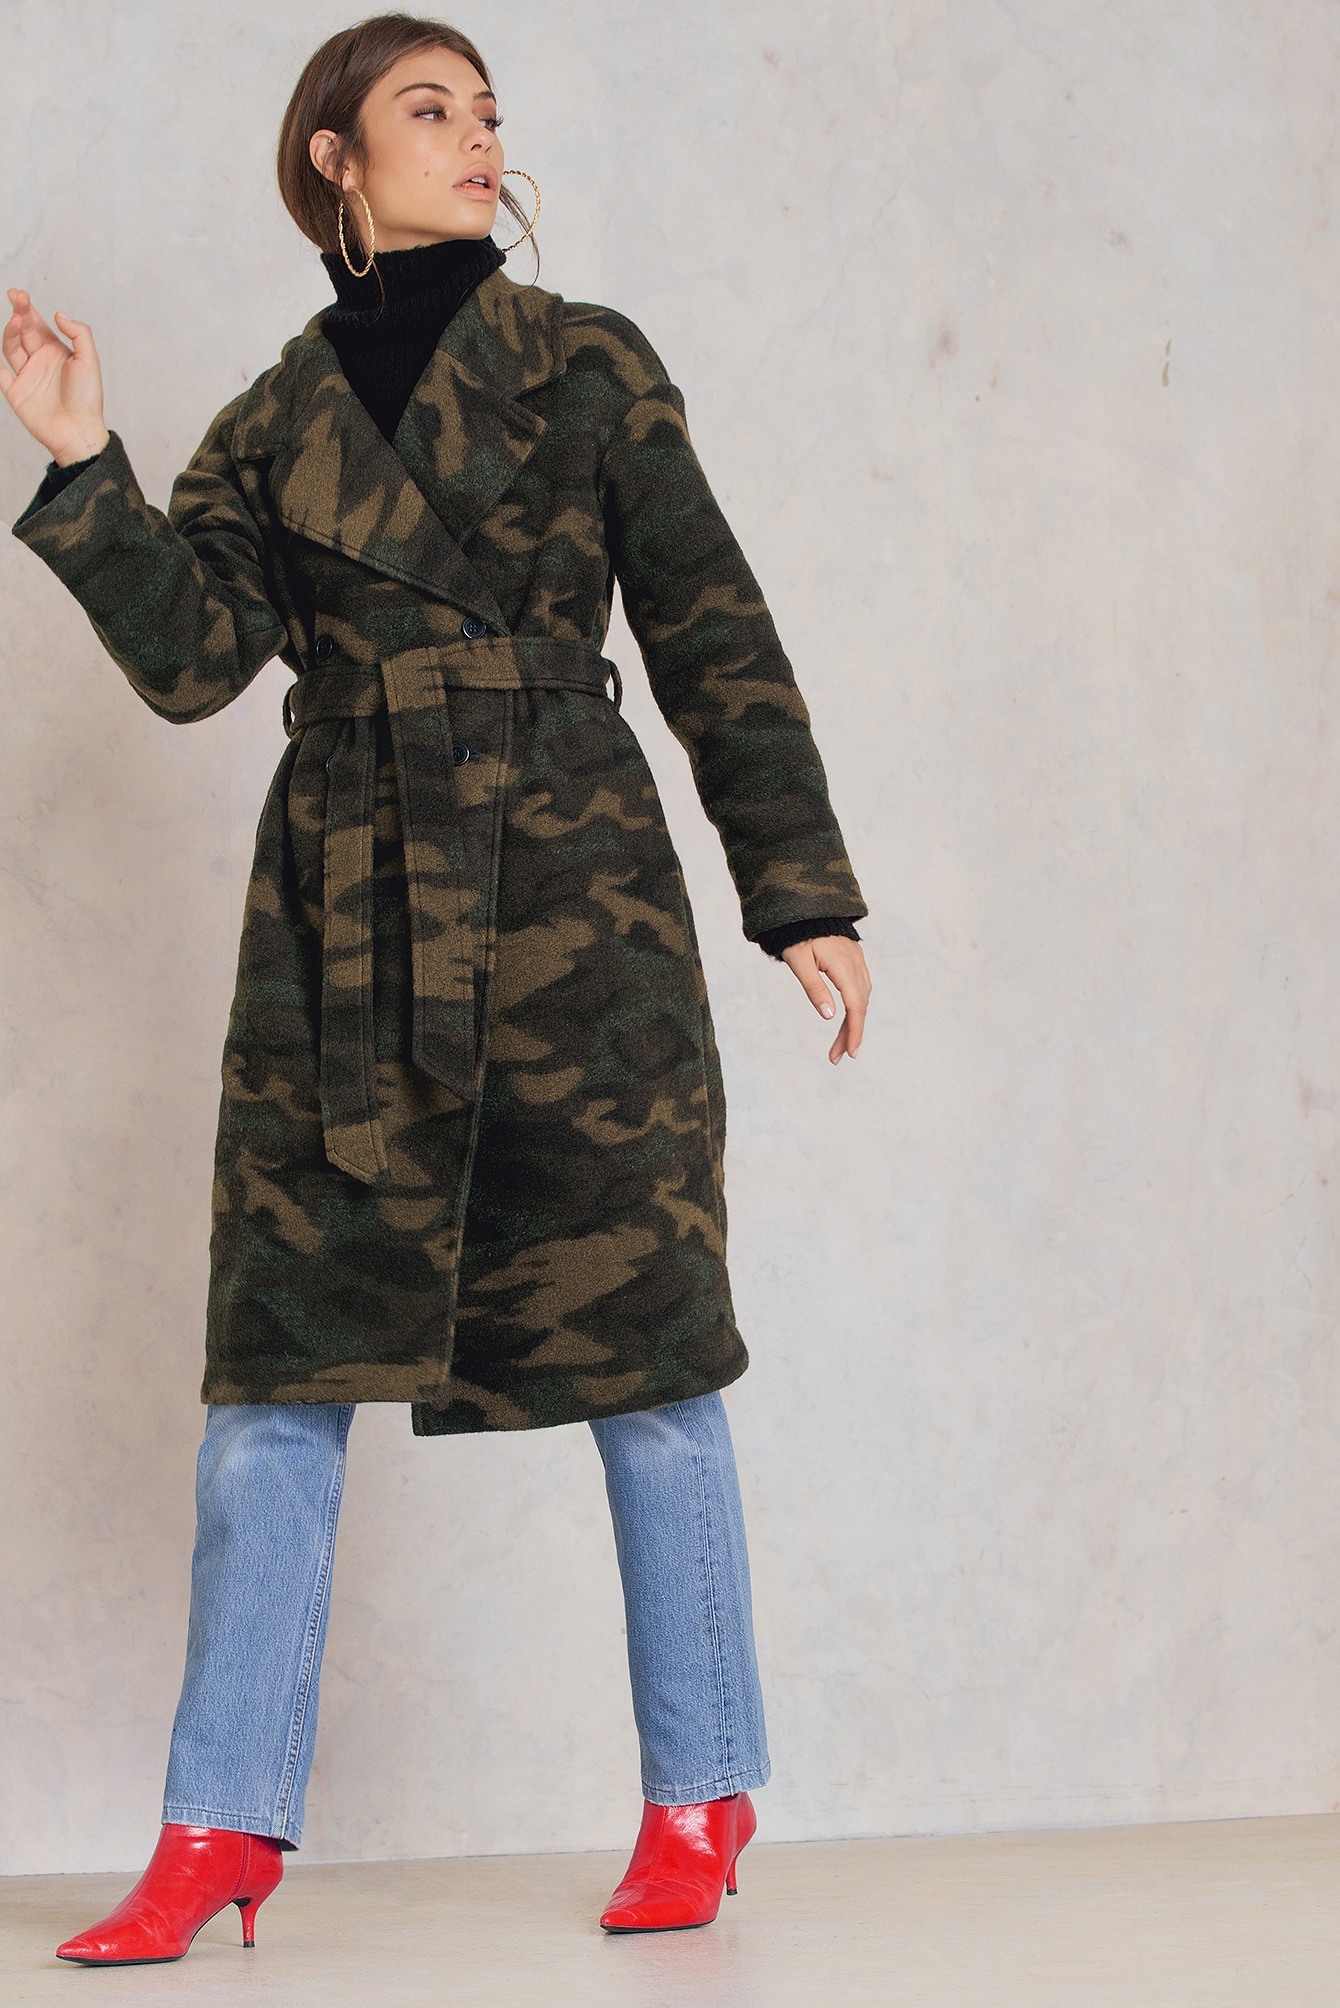 NA-KD Trend Camo Coat Green, Multicolor